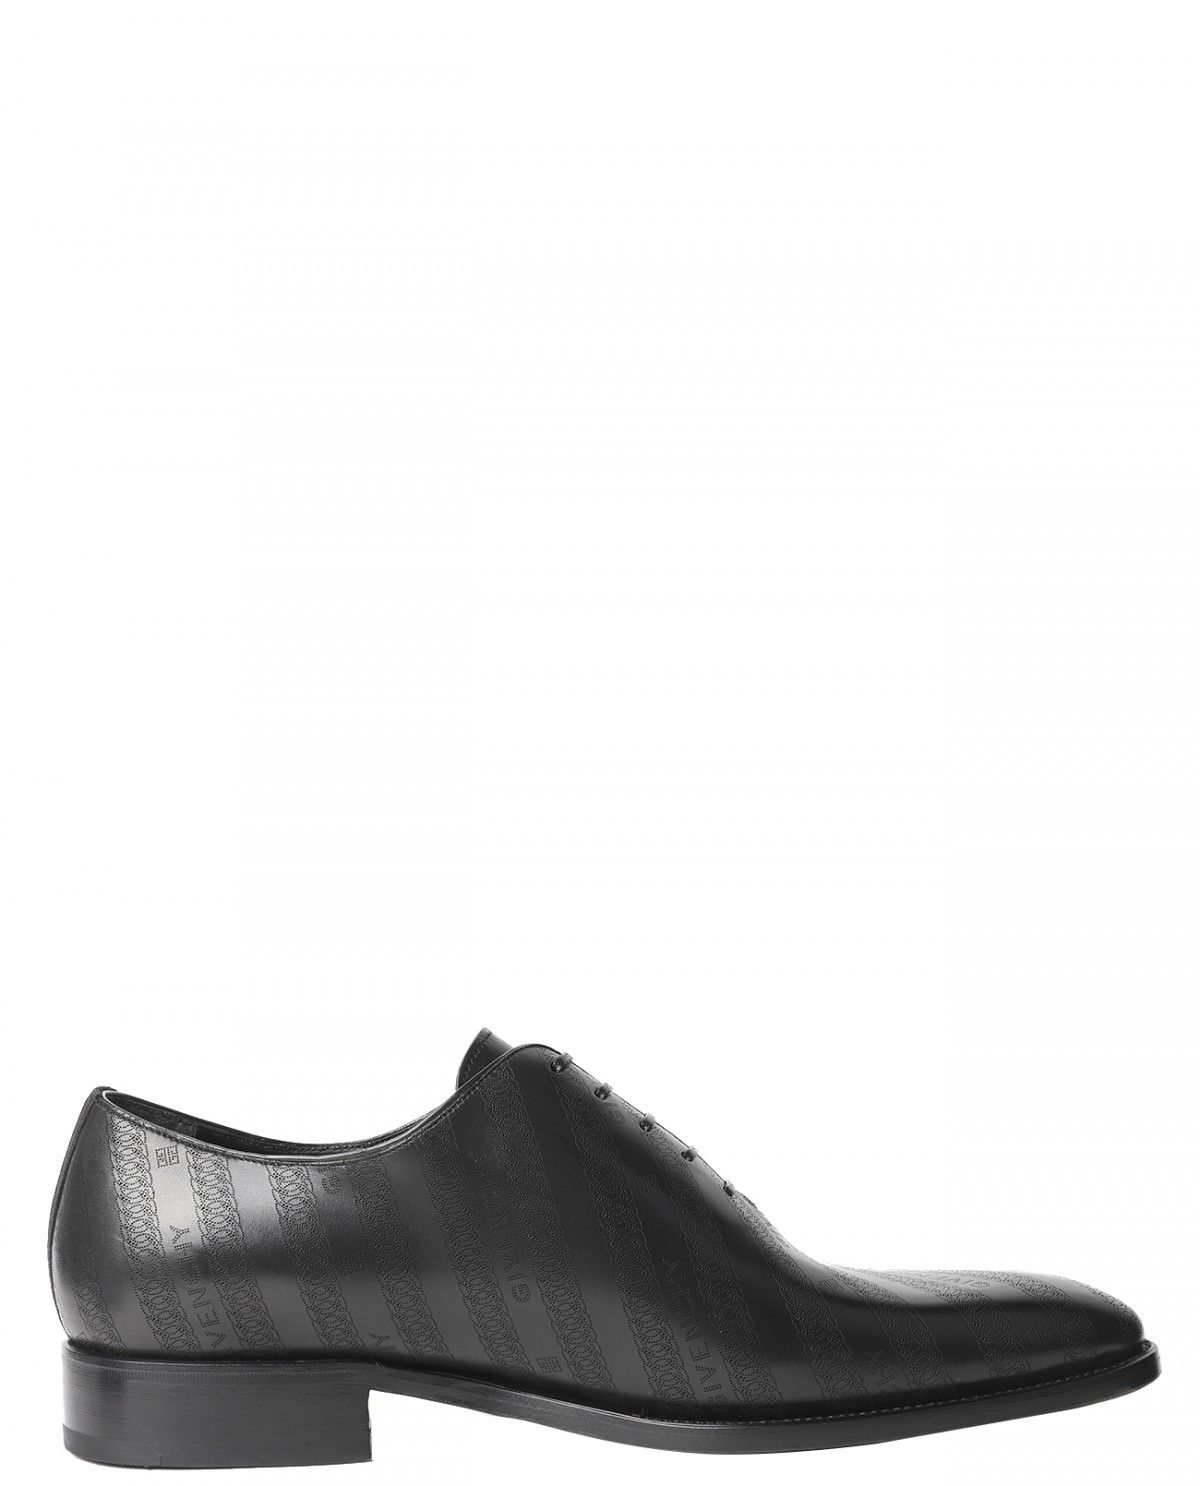 Givenchy chain logo oxford shoes